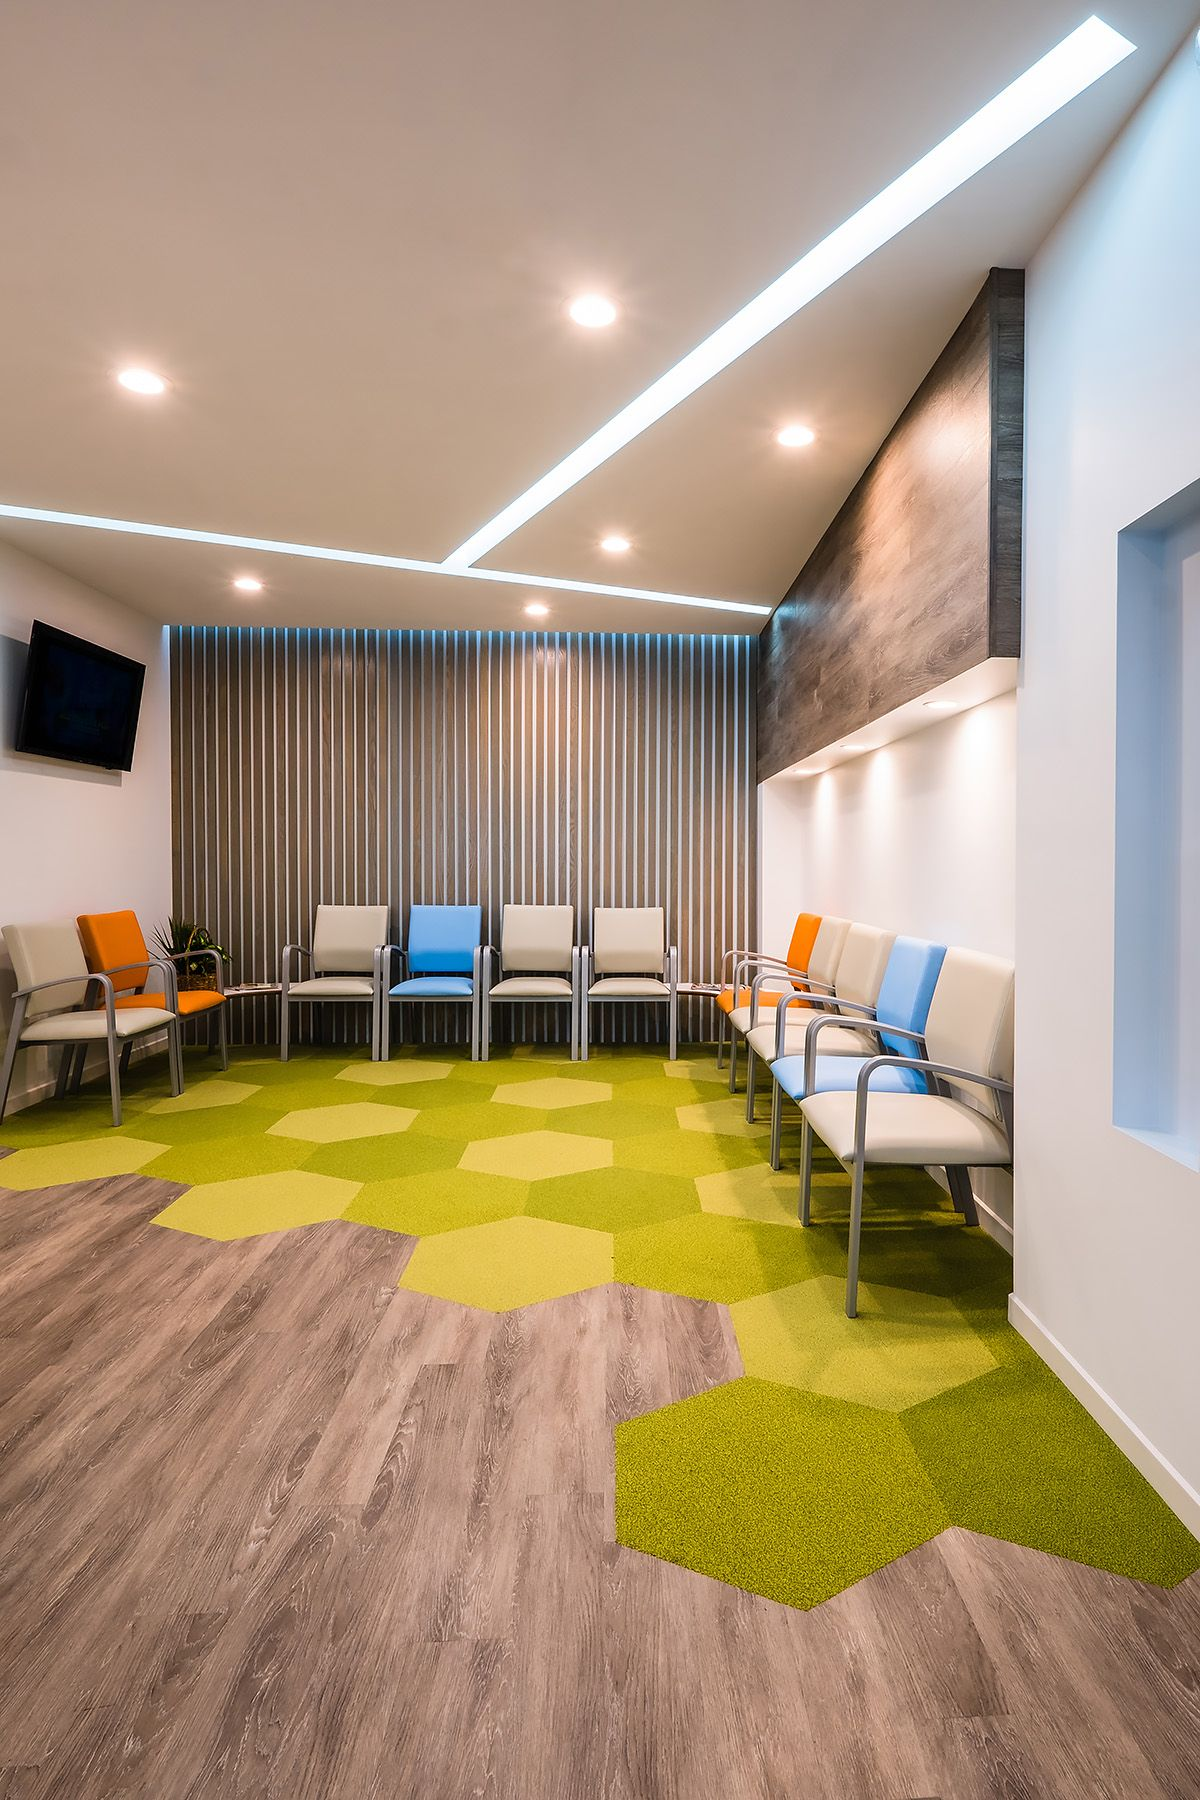 Chesapeake Pediatric Dental With Images Hospital Interior